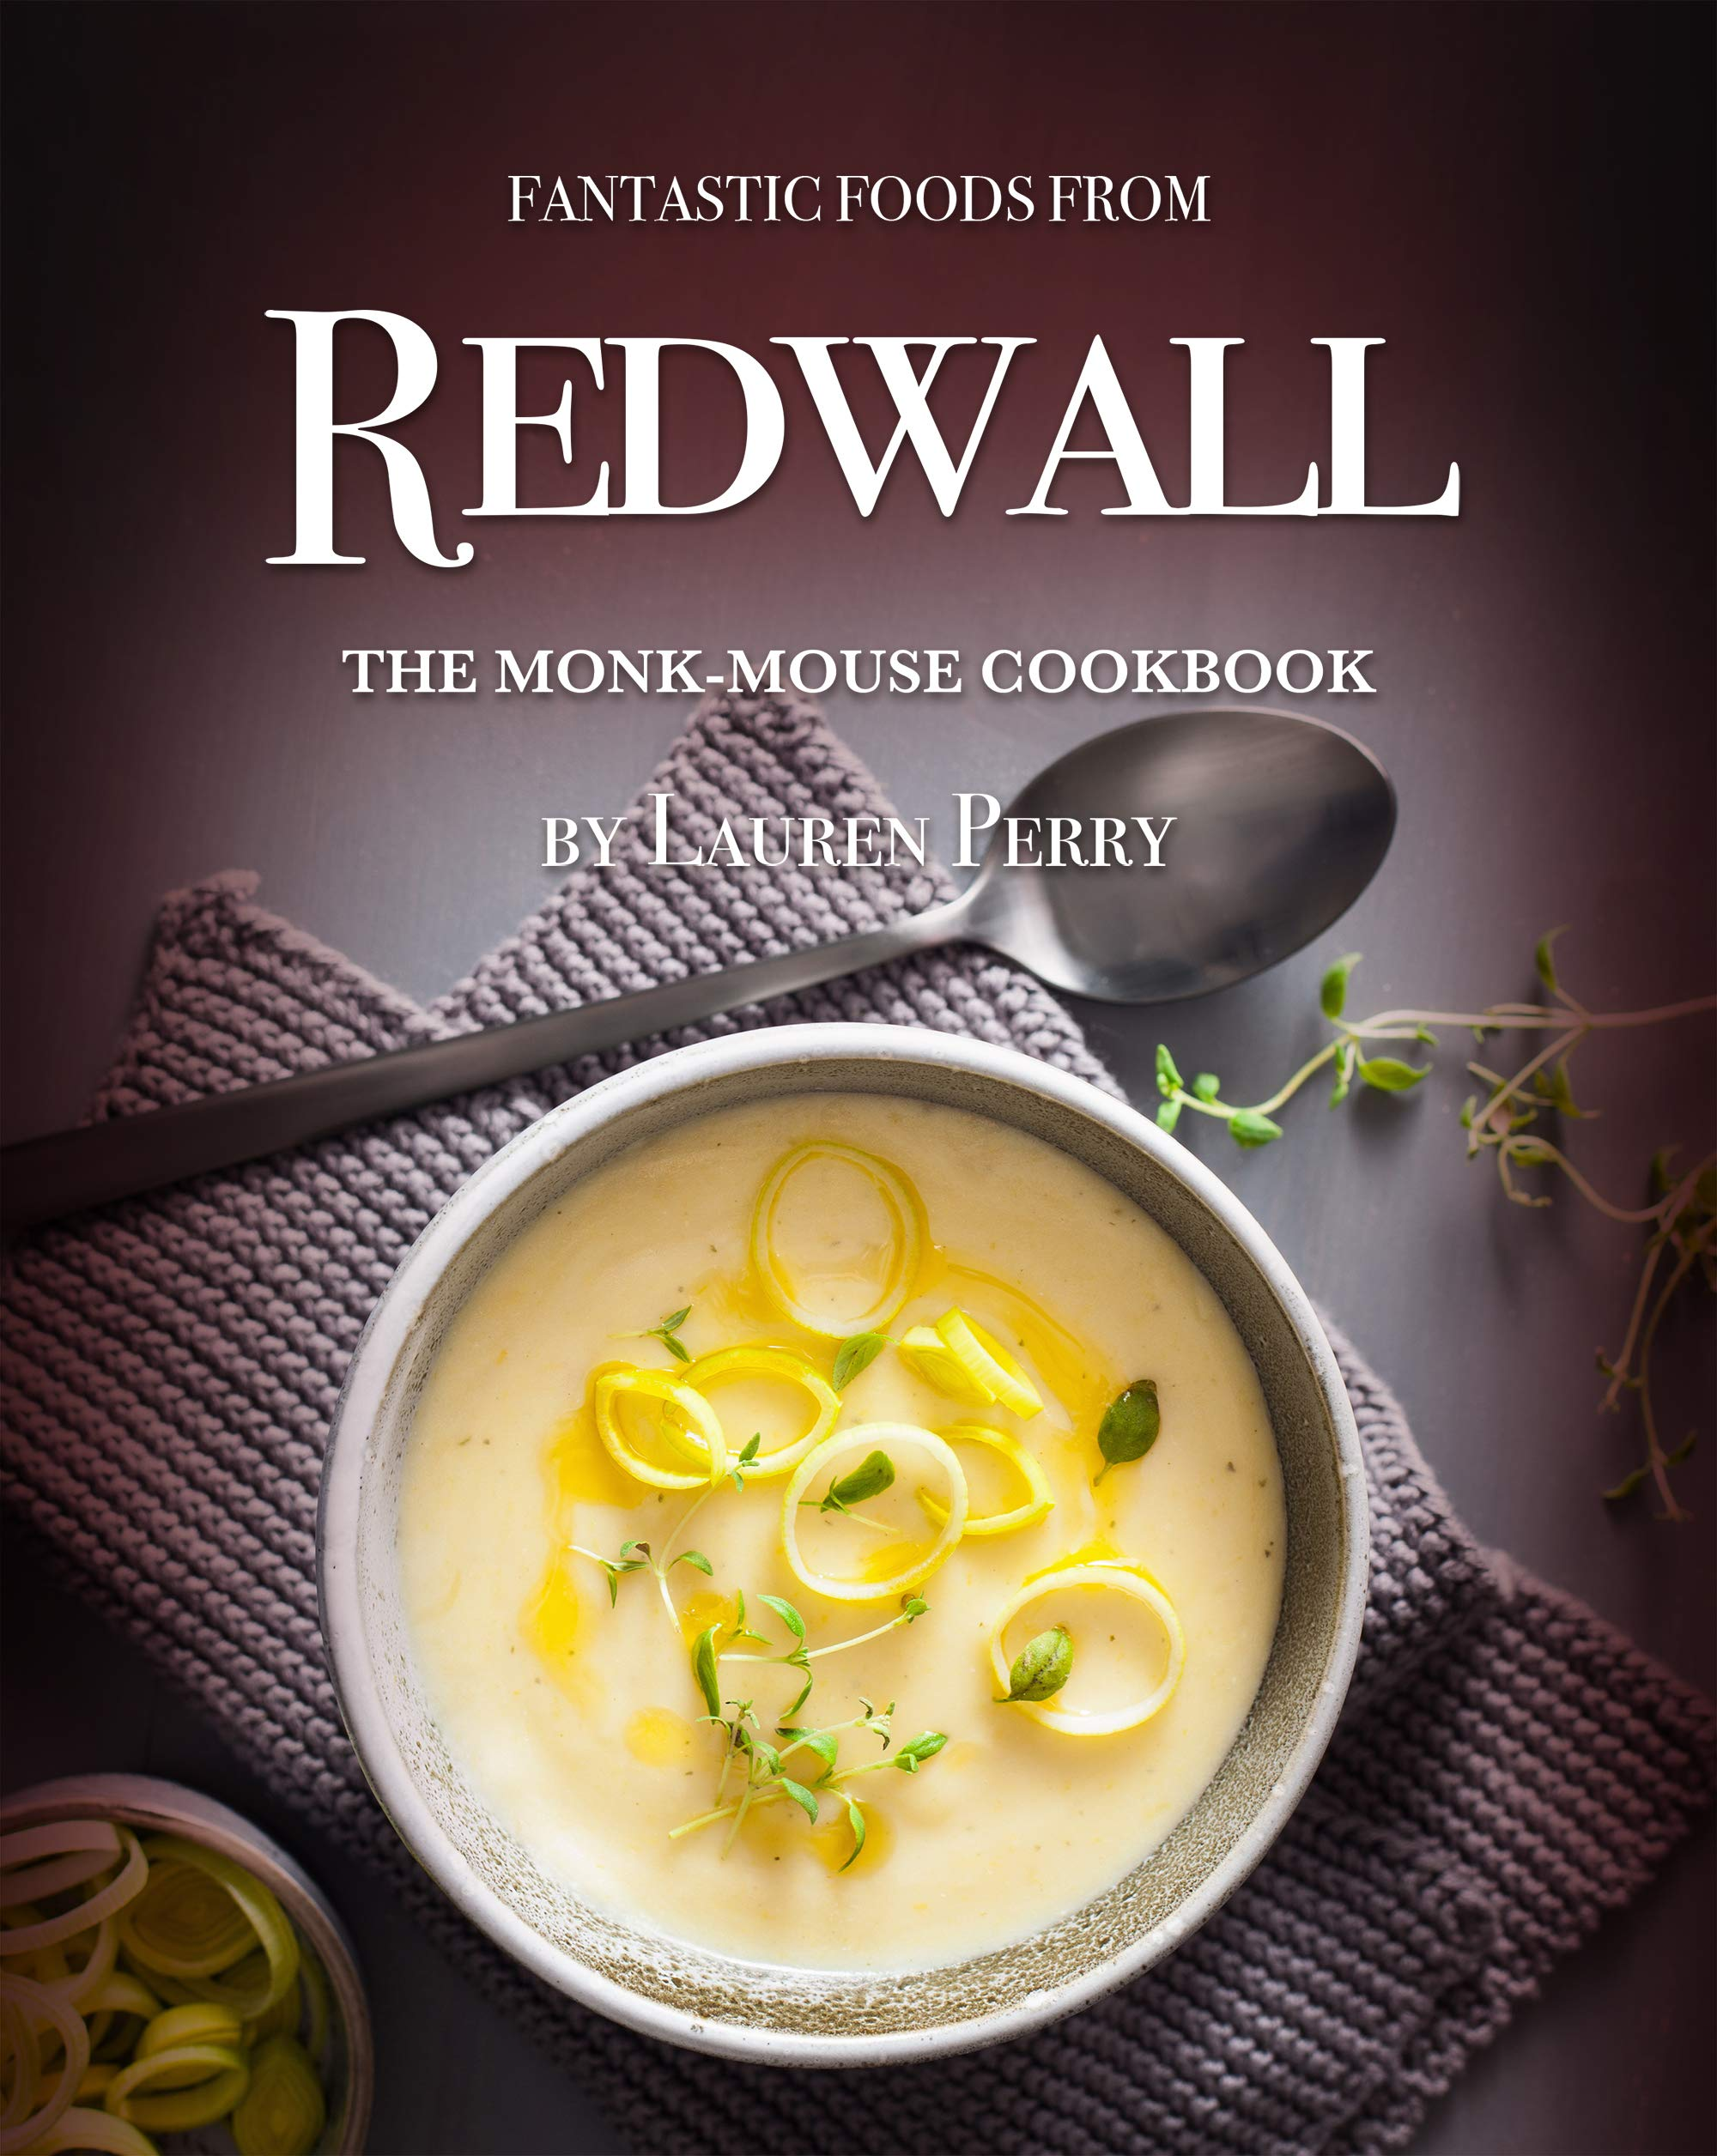 Fantastic Foods from Redwall: The Monk-Mouse Cookbook